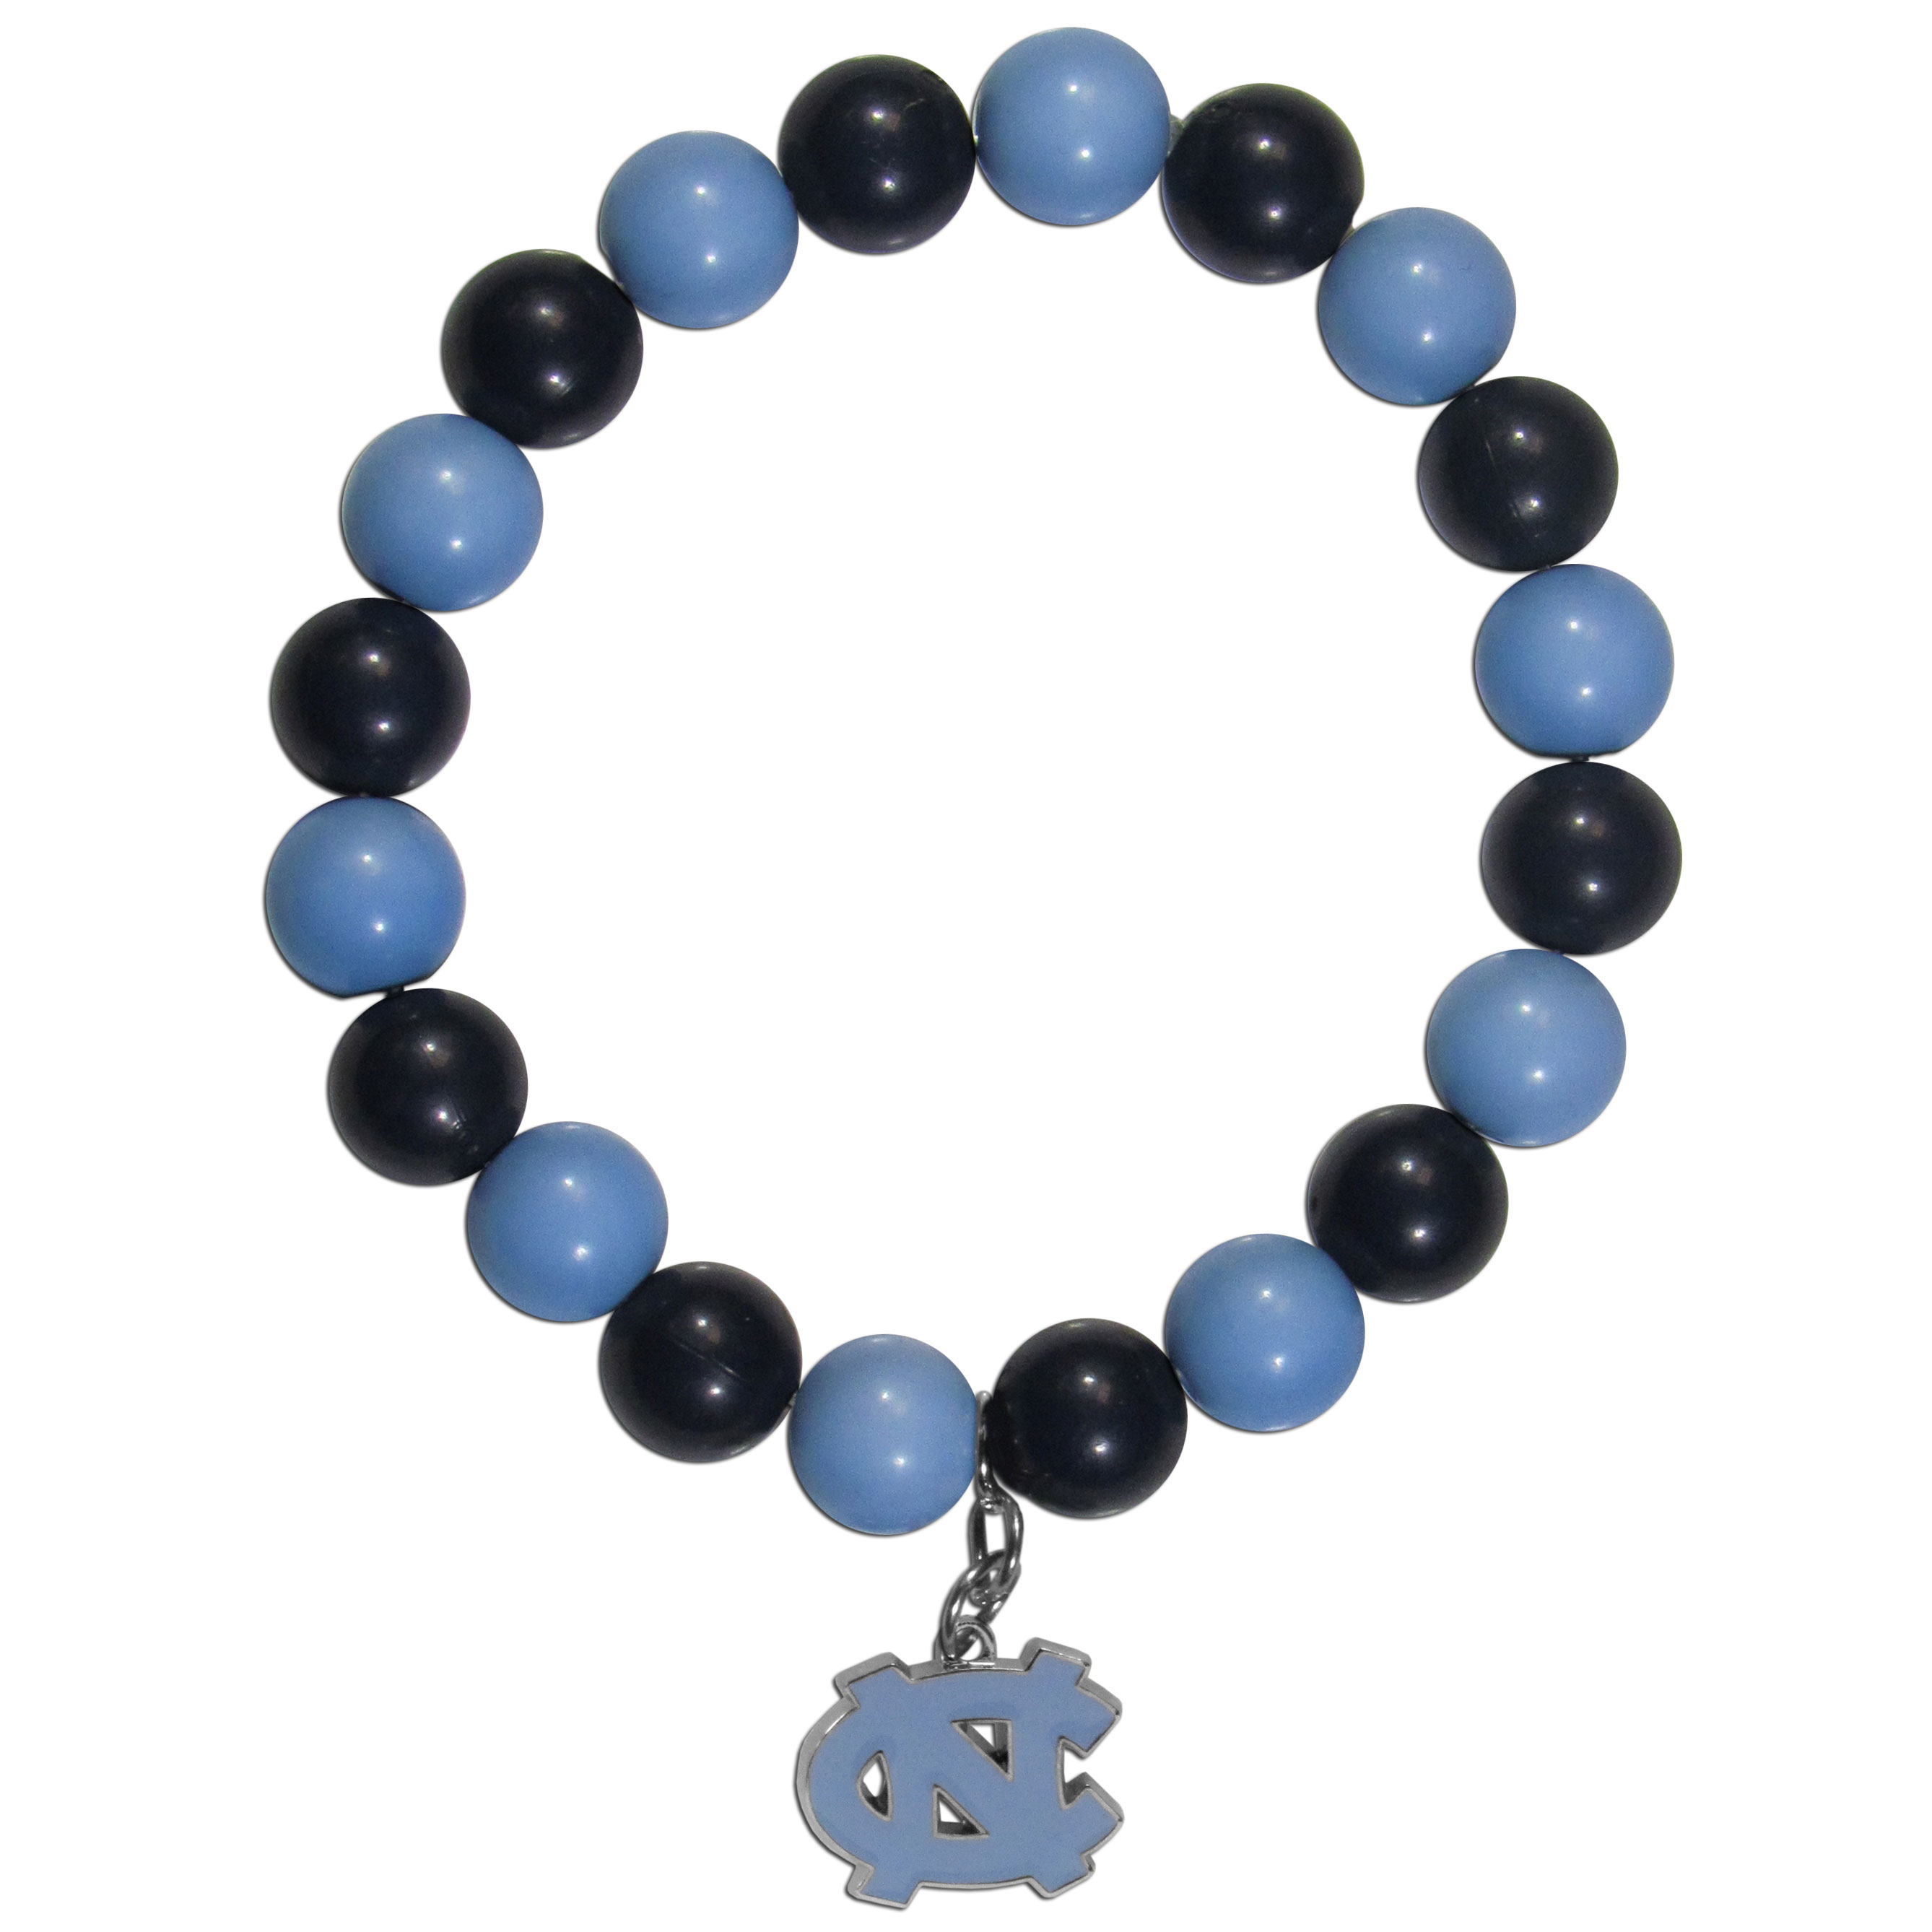 N. Carolina Tar Heels Fan Bead Bracelet - Flash your N. Carolina Tar Heels spirit with this bright stretch bracelet. This new bracelet features multicolored team beads on stretch cord with a nickel-free enameled chrome team charm. This bracelet adds the perfect pop of color to your game day accessories.